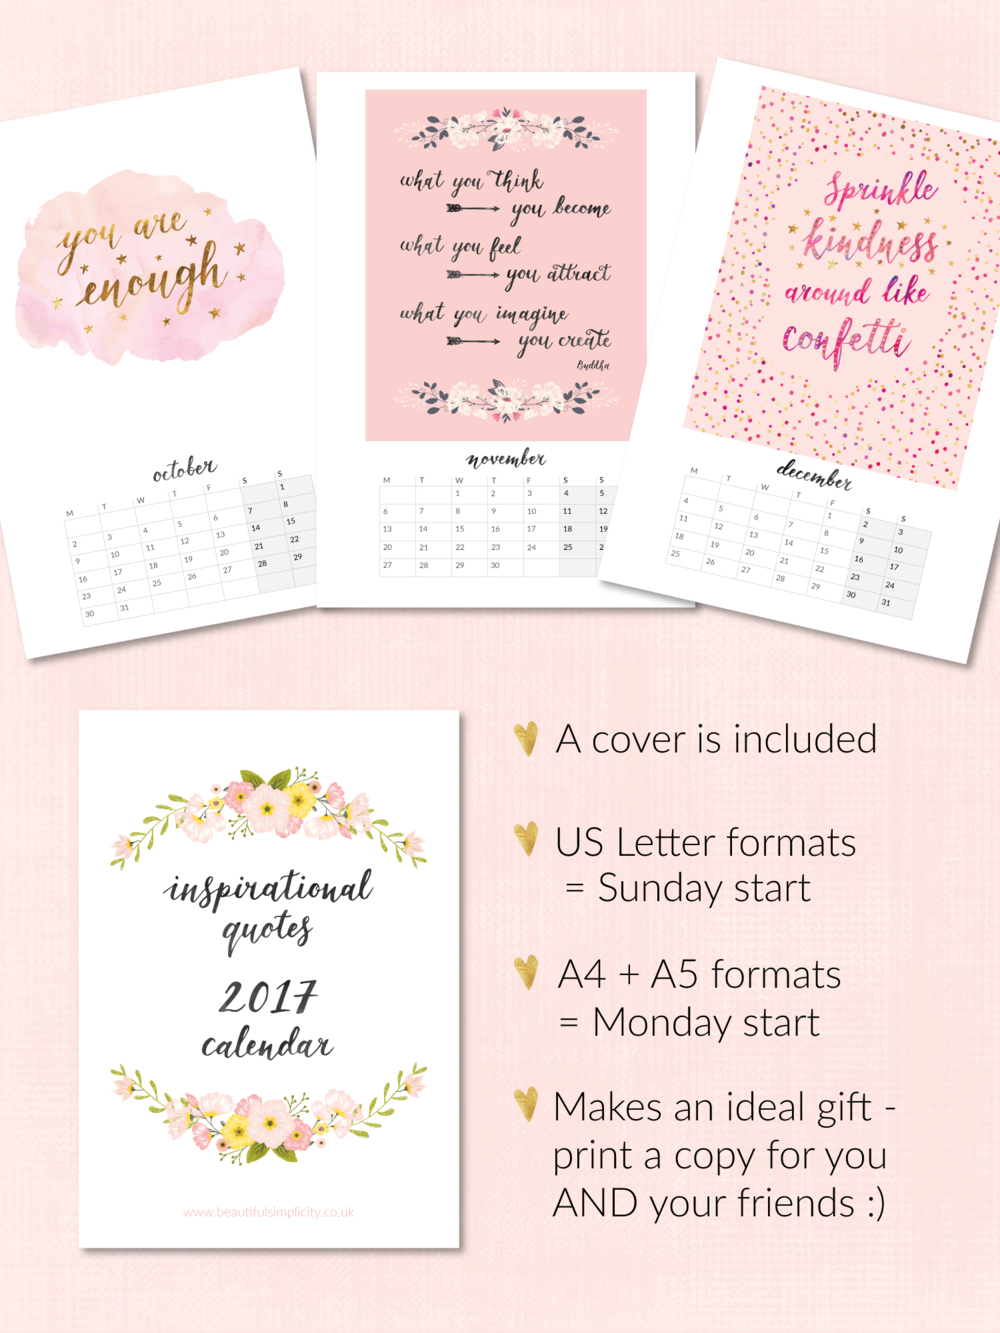 Calendar Inspirational Quotes : Printable calendars now in my etsy shop — beautiful